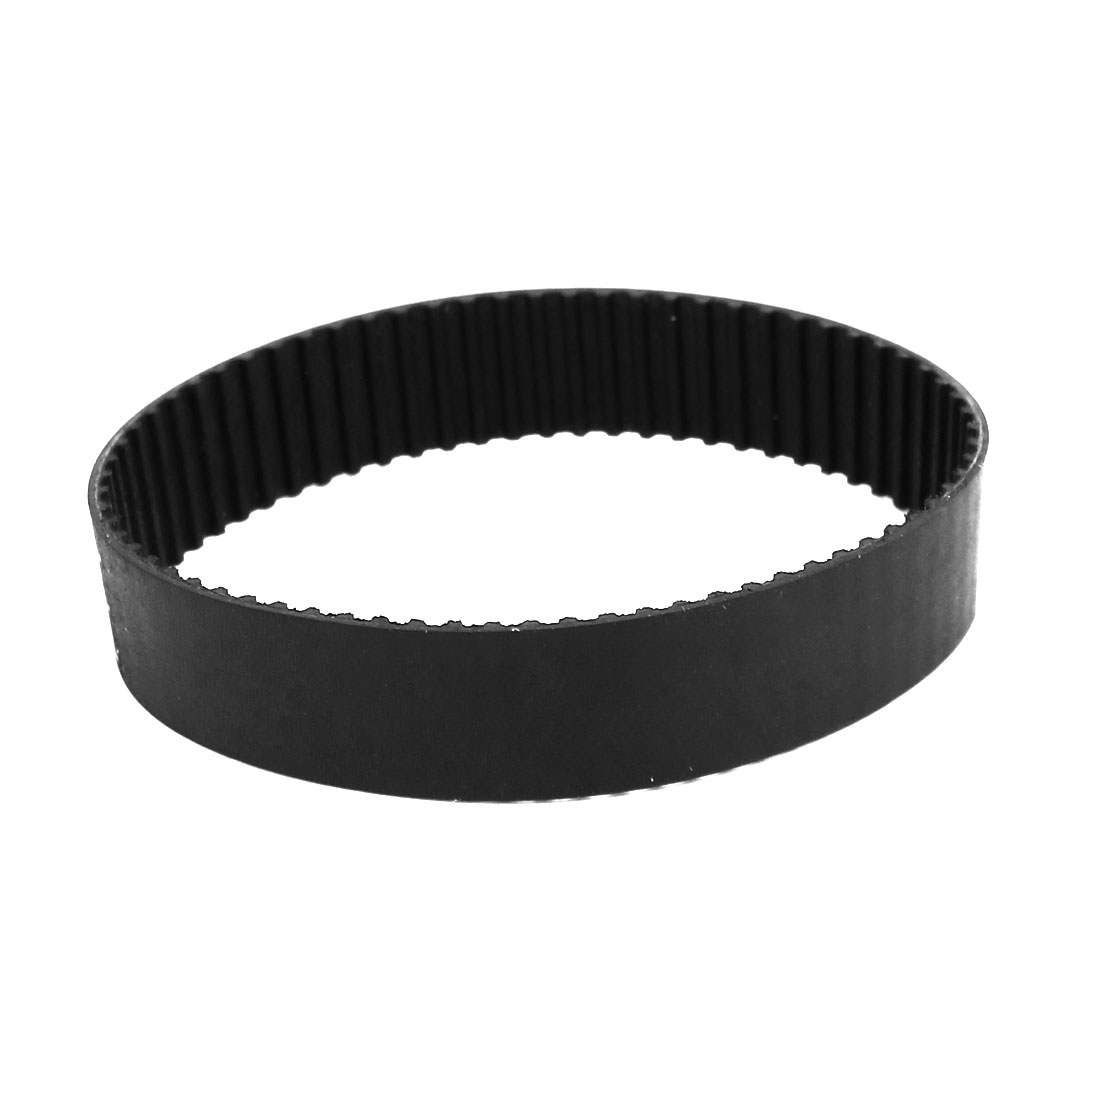 Unique Bargains 70 Teeth 9.8mm Width 149mm Perimeter Synchronous Closed Loop Rubber Timing Belt - image 2 of 2